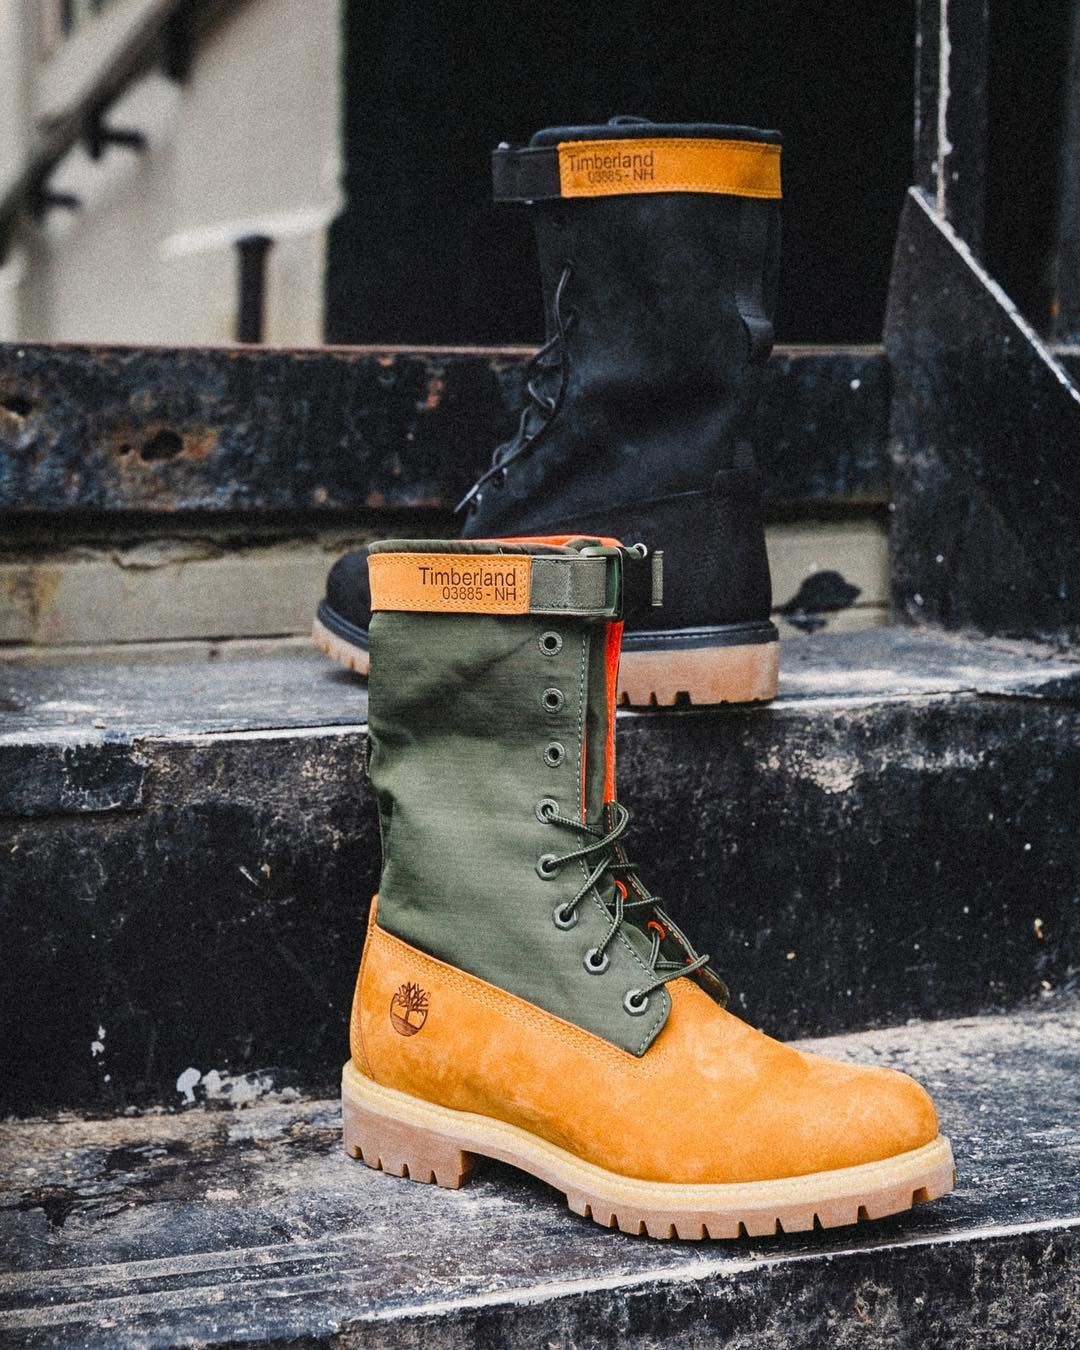 Boot SZN approaches. #Timberland 6